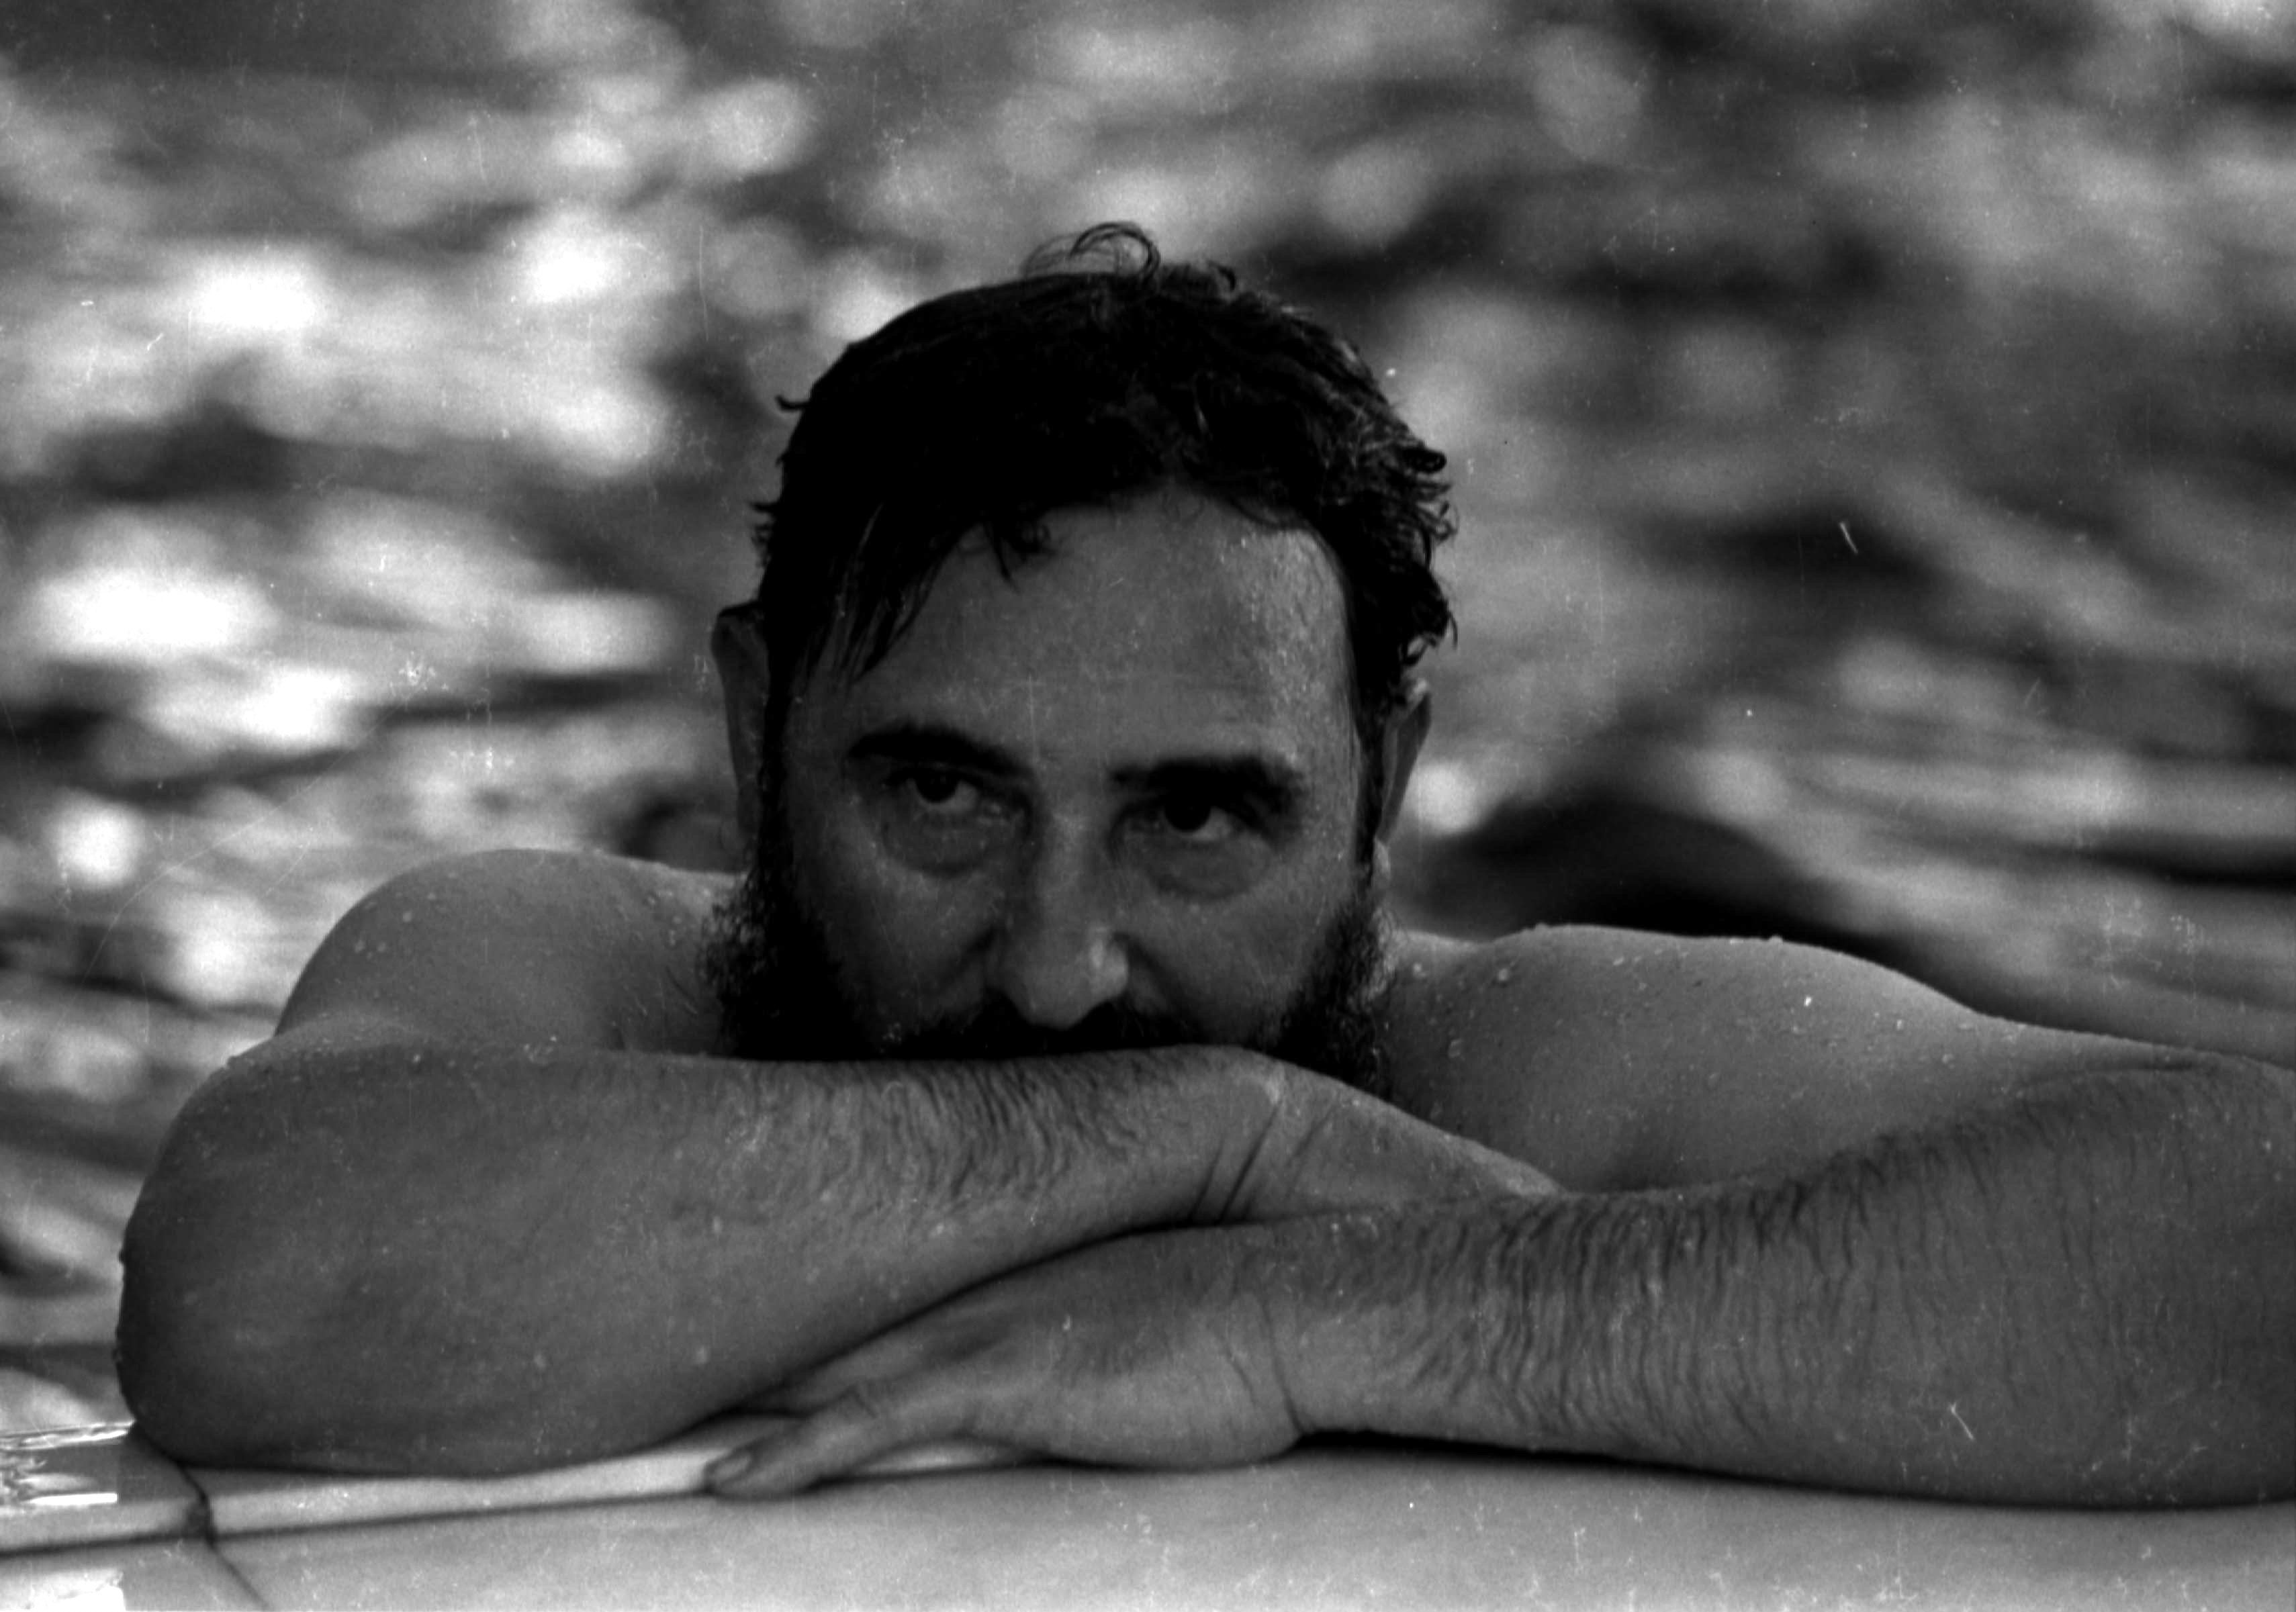 Then Cuban Prime Minister Fidel Castro relaxes in a swimming pool during a visit to Romania in this May 28, 1972 file photo. REUTERS/Prensa Latina/File Photo